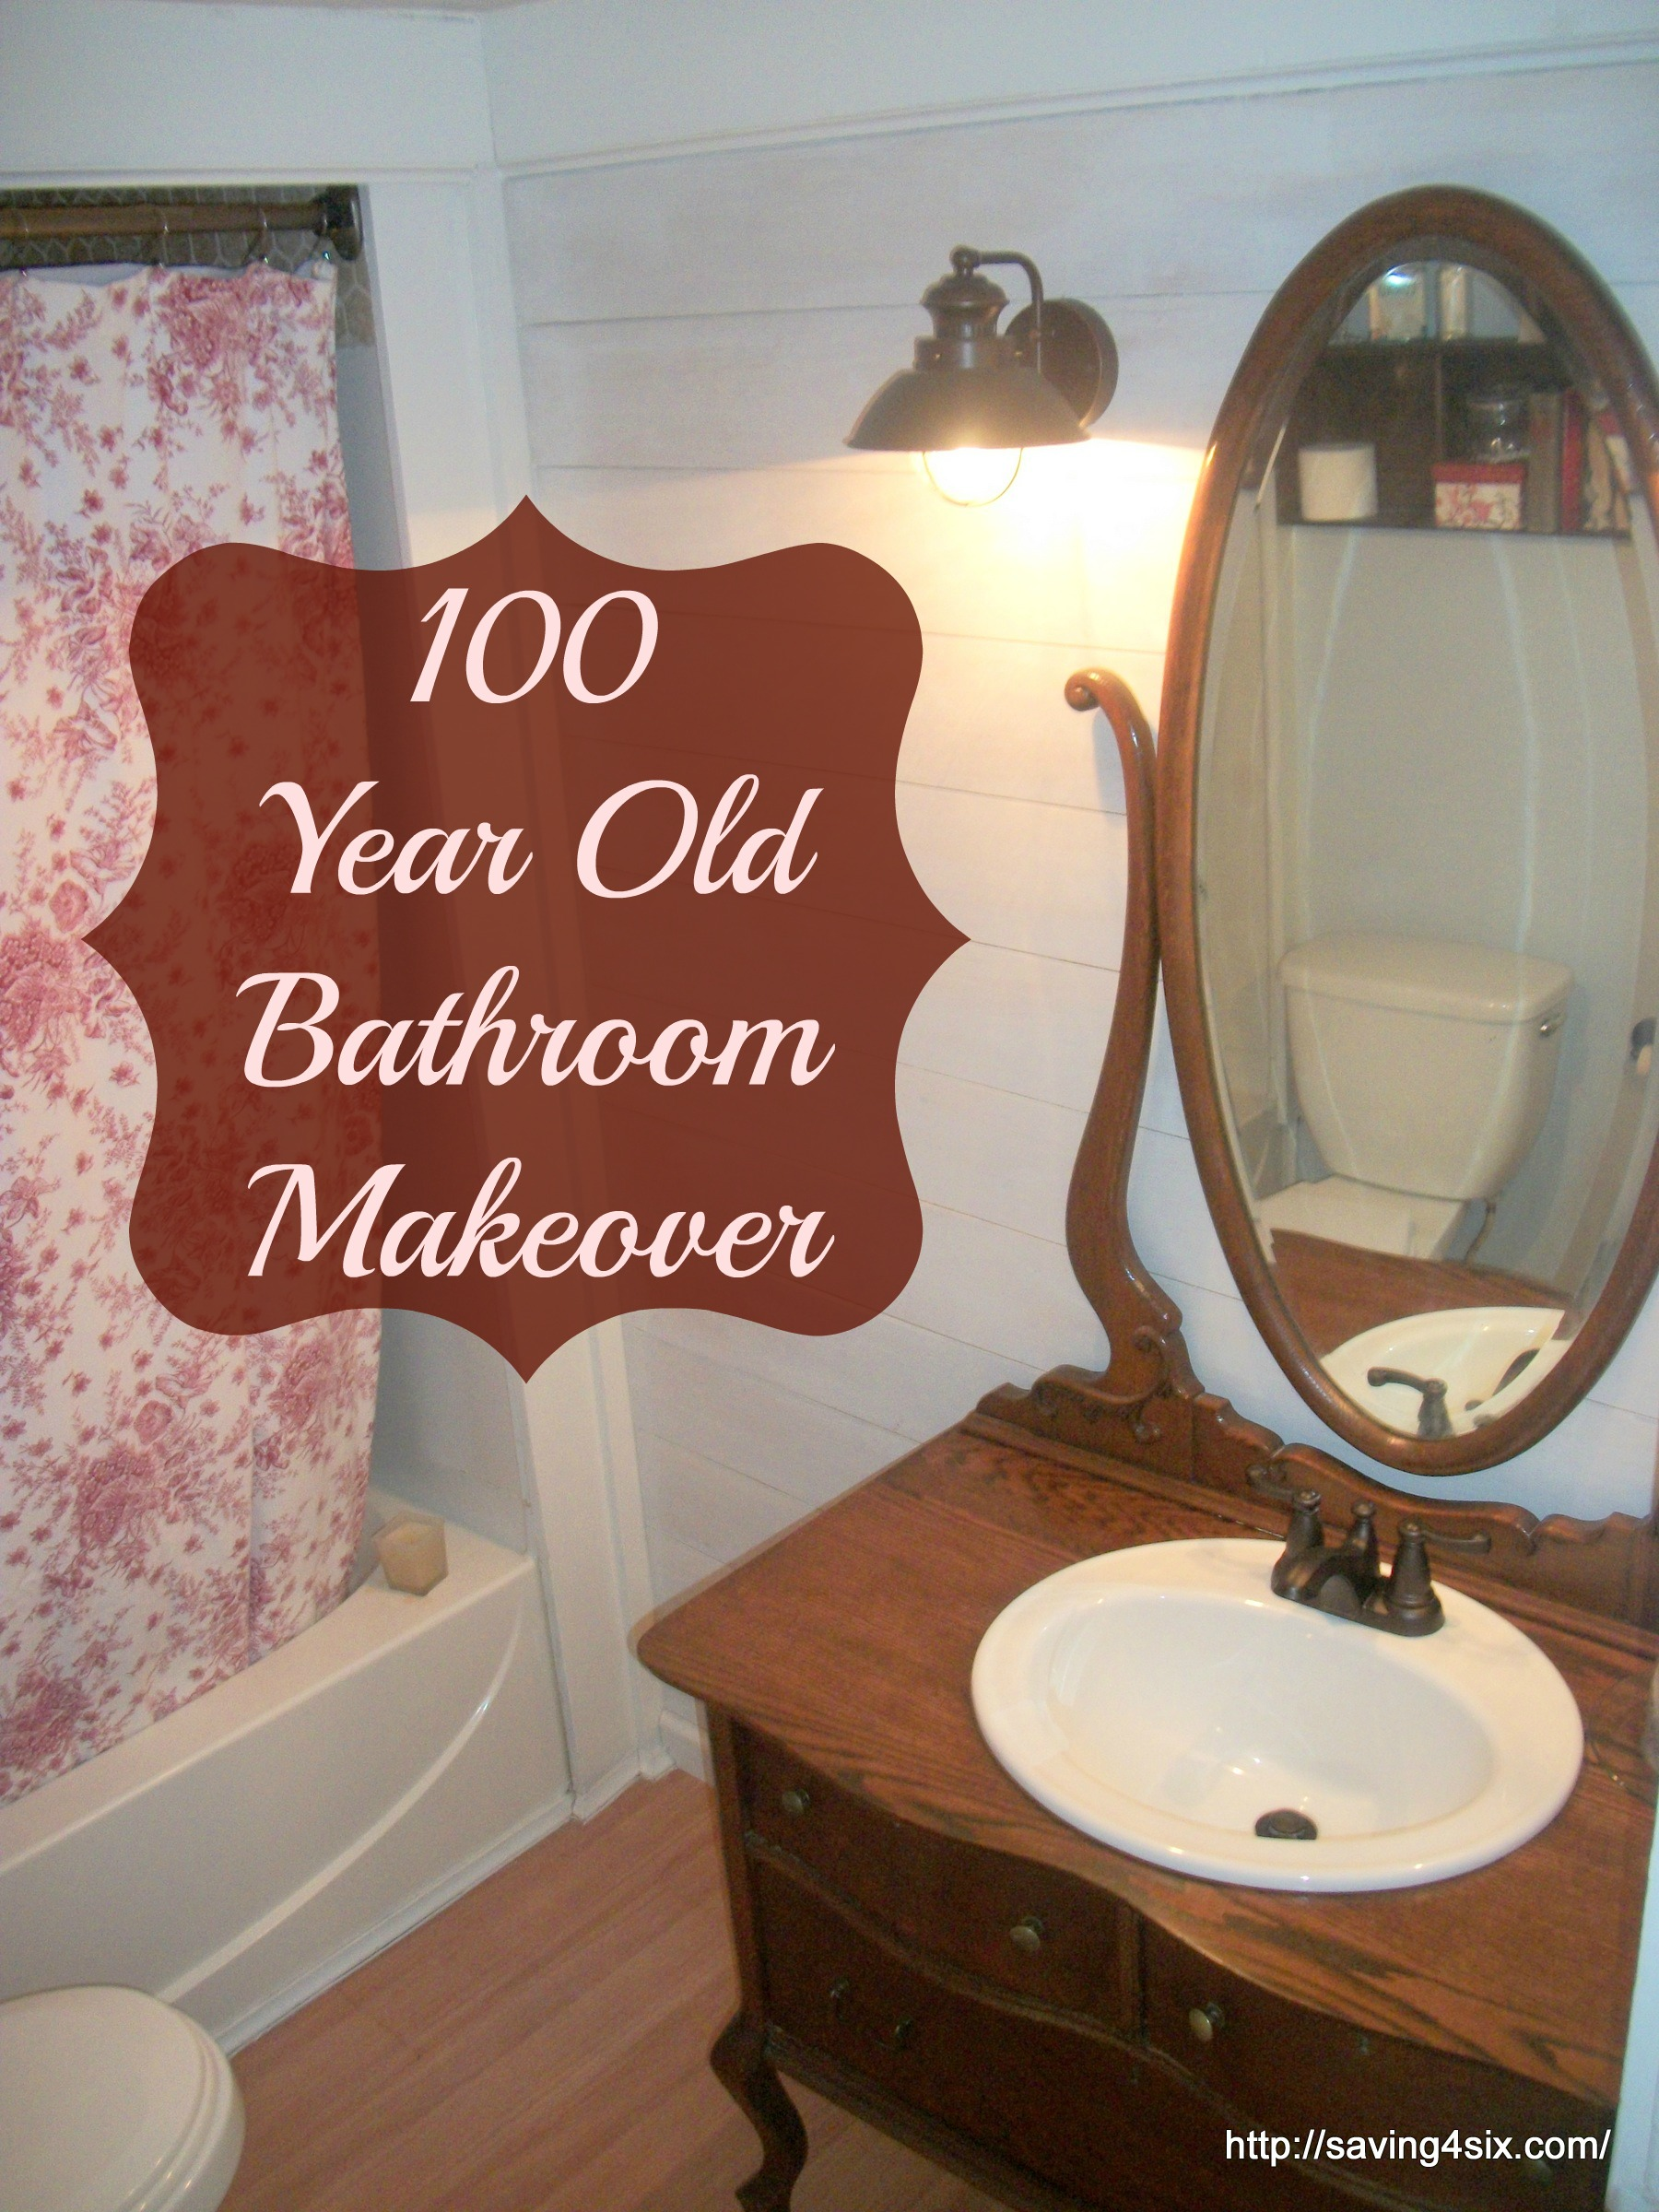 Bathroom Makeover on old house design, old world design, old small apartment designs, old cottage designs, old office design, luxury bathrooms designs, old room designs, old master bathrooms, old library designs, old gate designs, old and new look for bathrooms, old style bathrooms, old flowers designs, old vintage bathrooms, old pool designs, old couch designs, old country bathrooms, old desk designs, old bedroom, old roof designs,